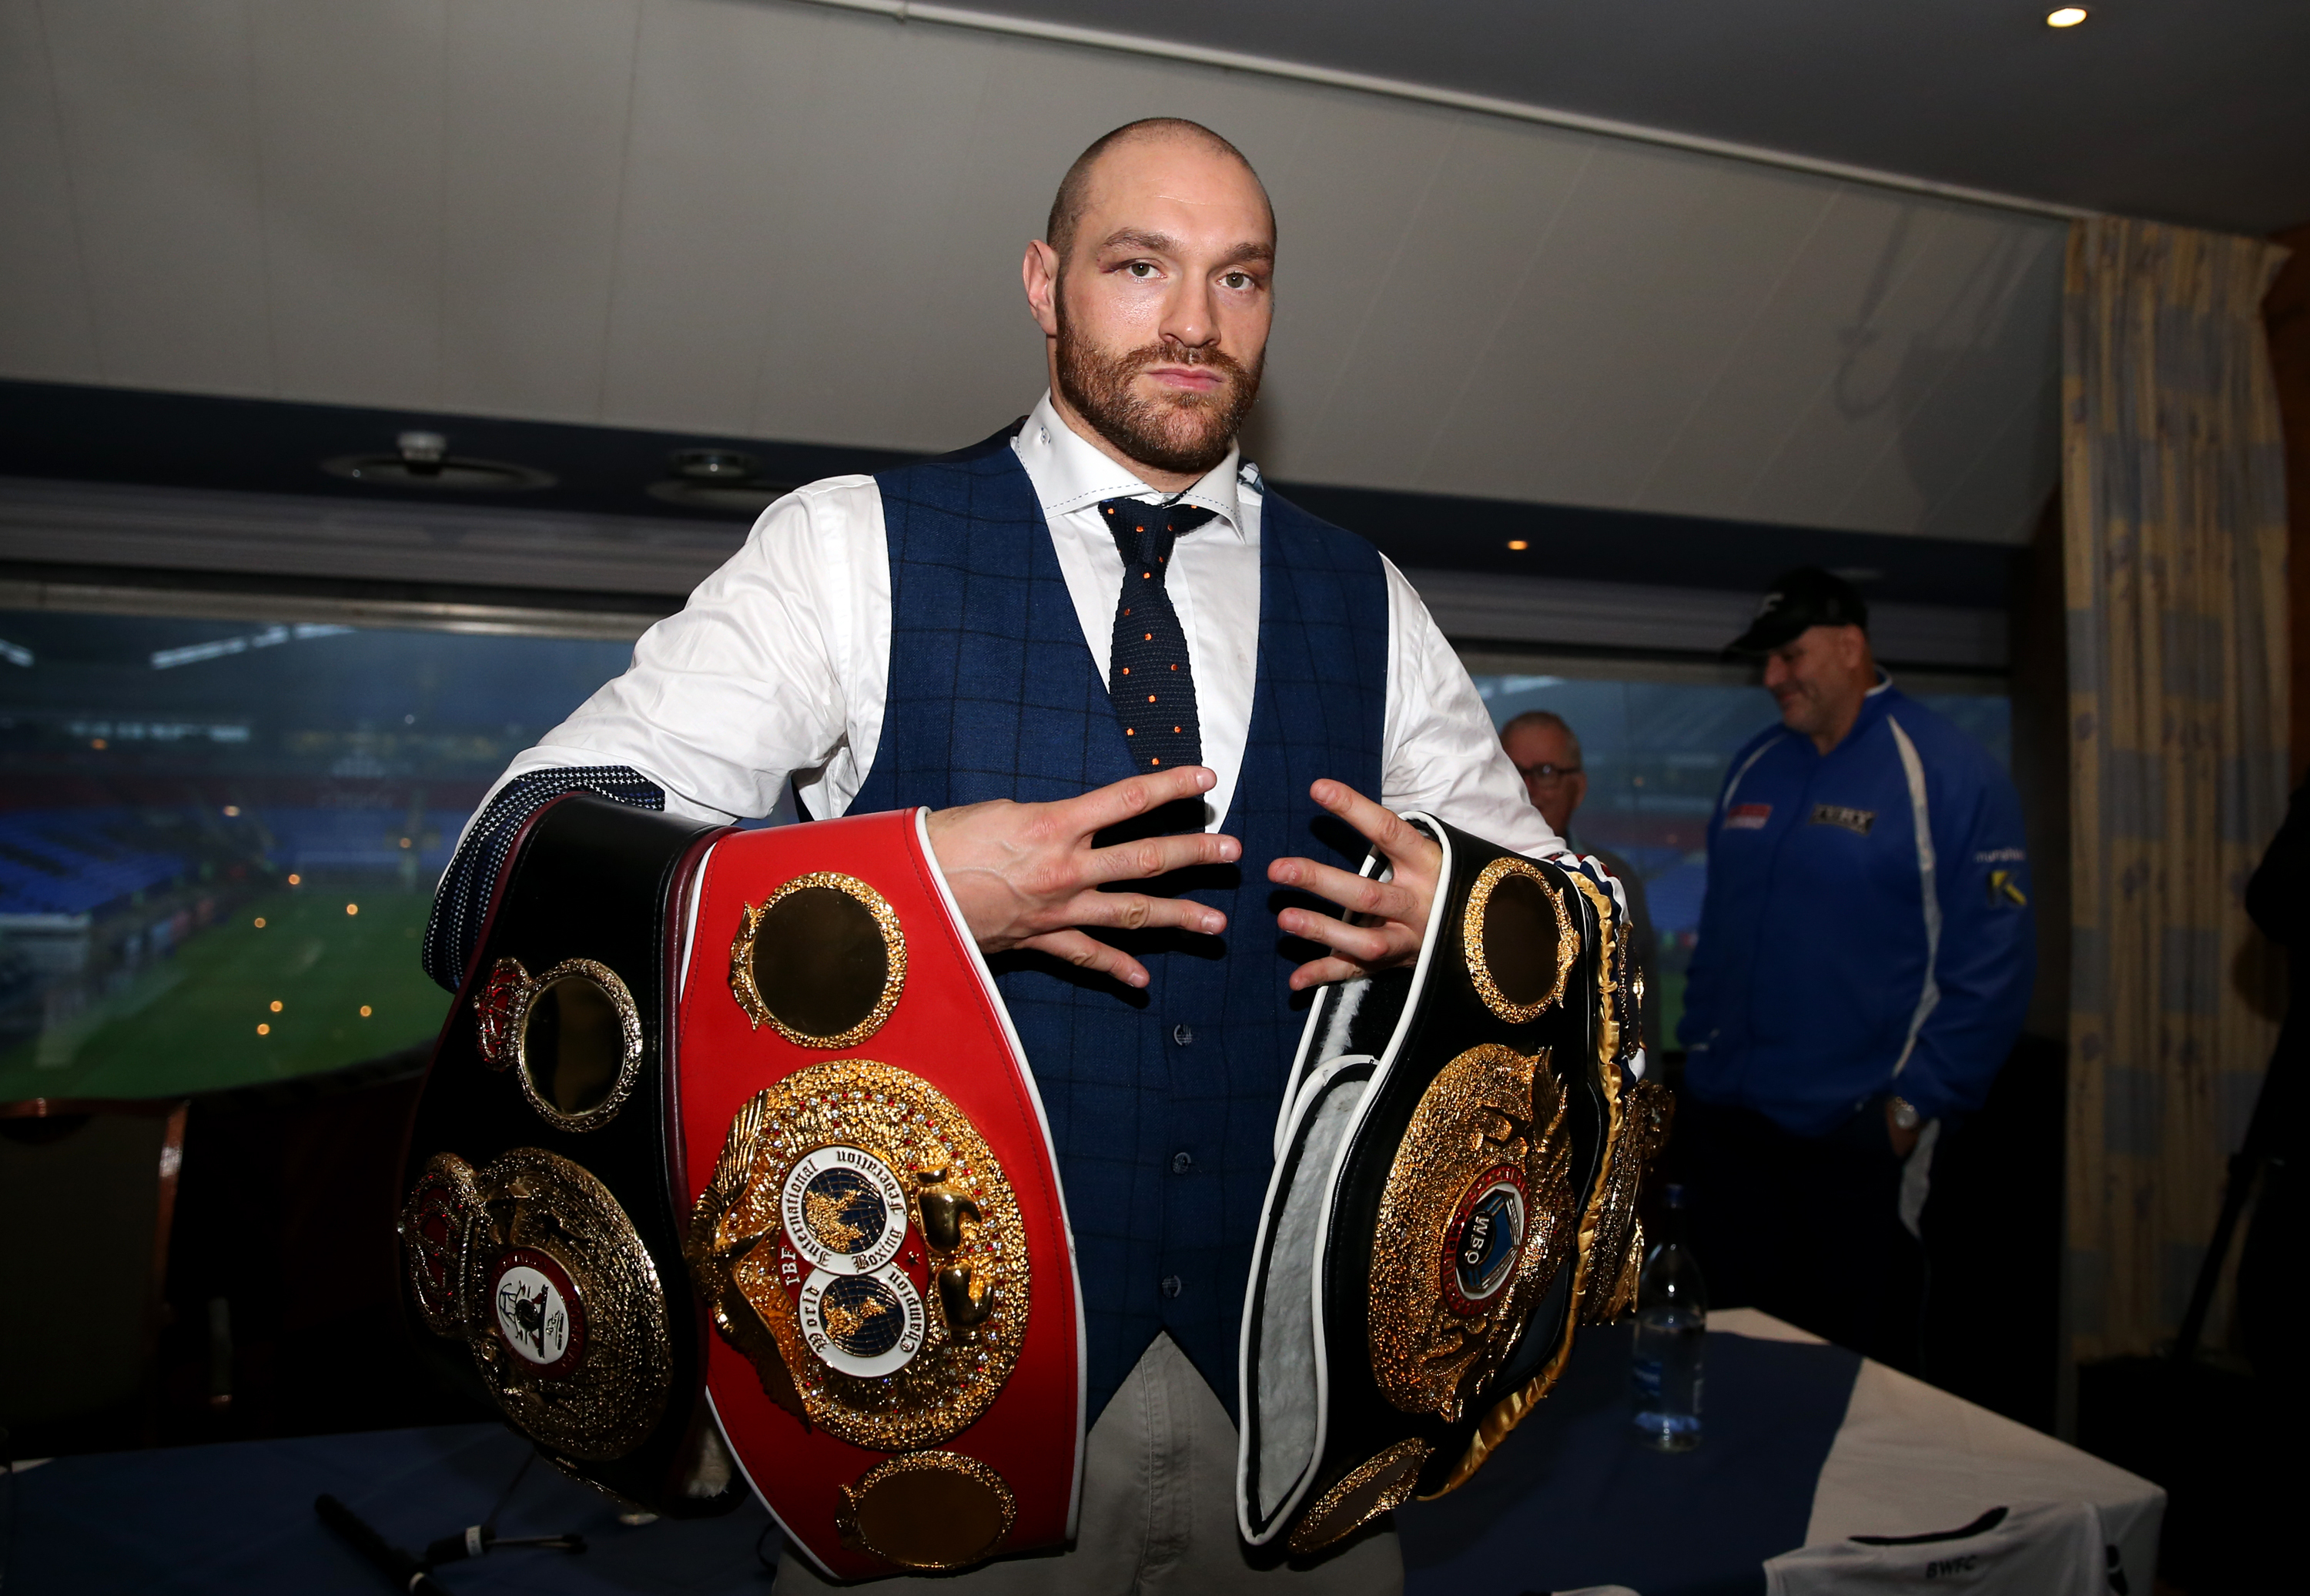 Following His Klitschko Victory In Dusseldorf Fury Revealed That He Owes Famous Moniker To A Distant Family Member